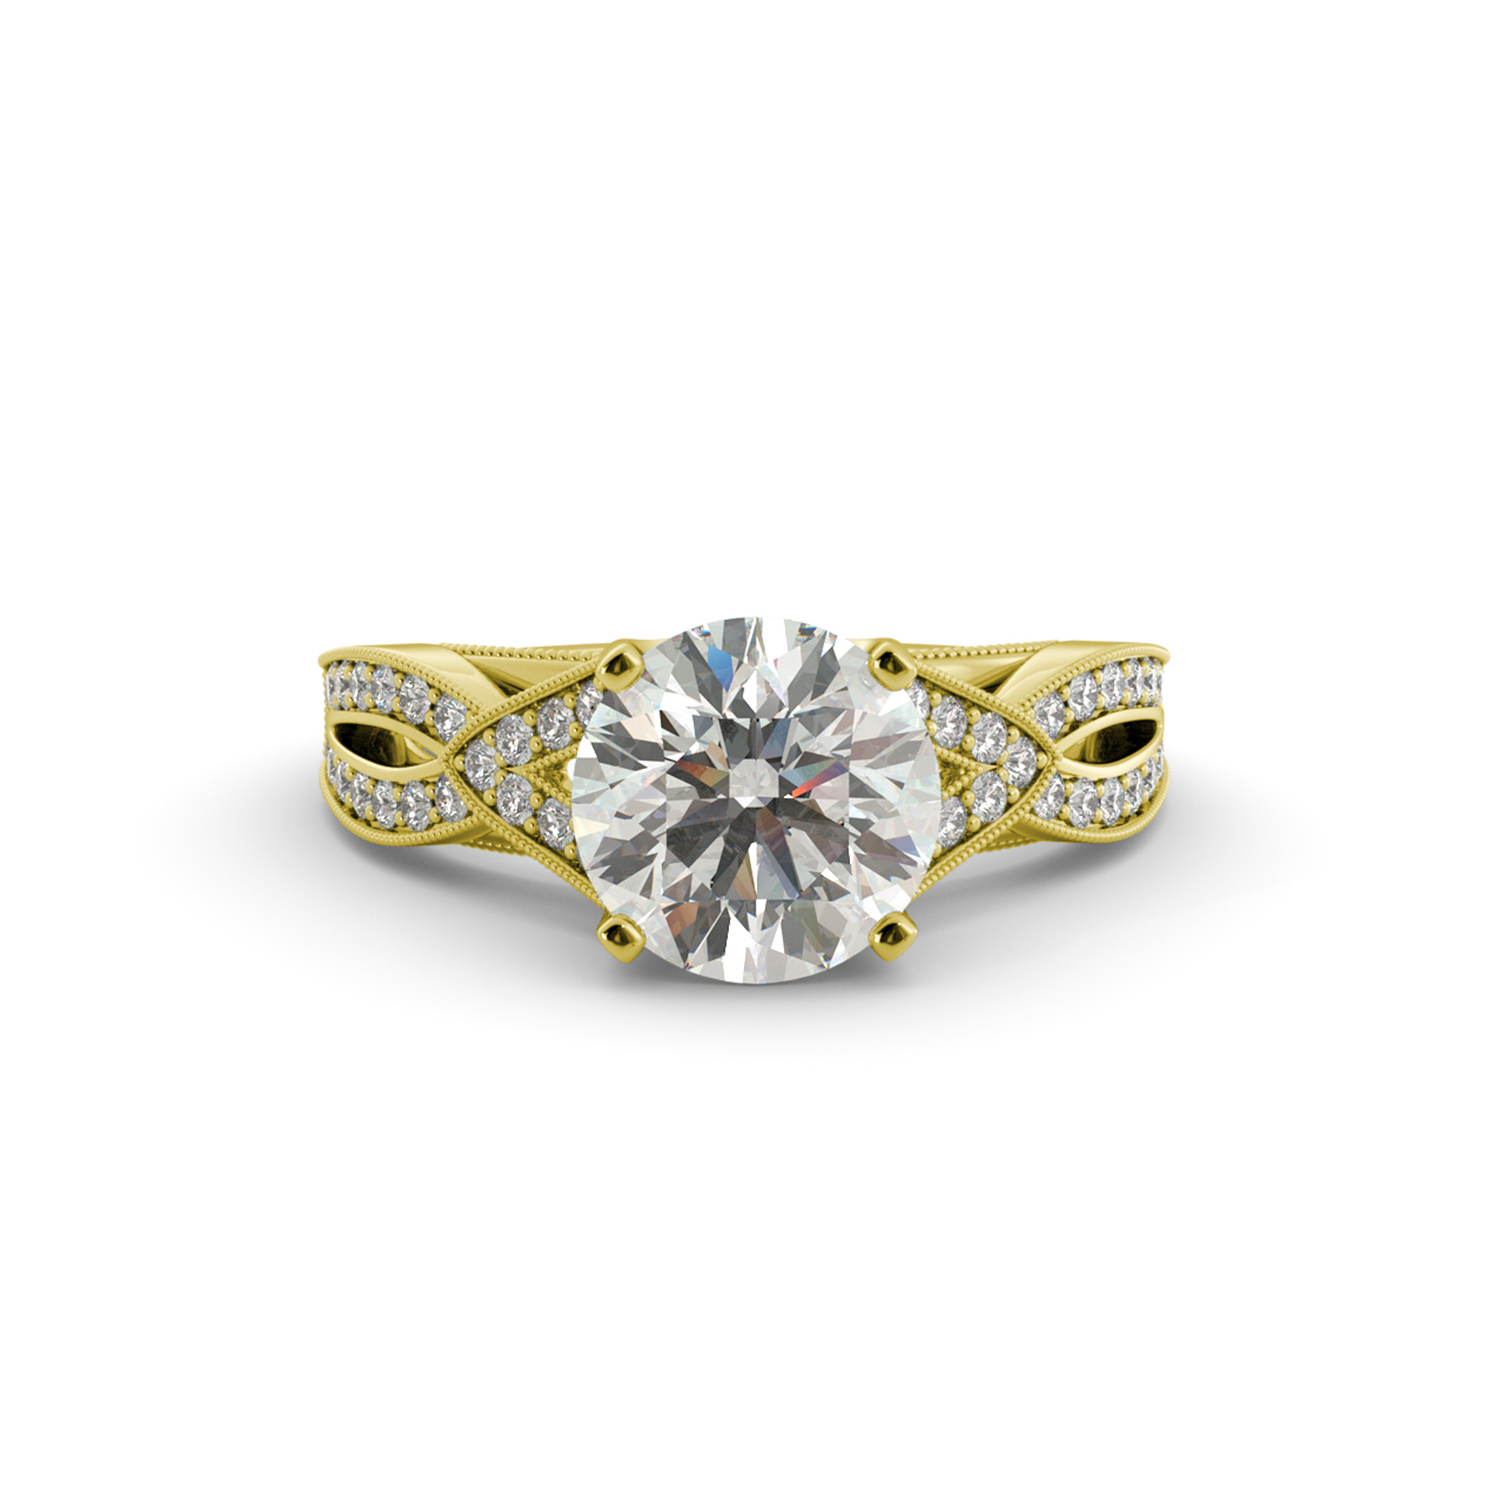 3.20 dwt Round One Moissanite Diamond Cathedral Engagement Ring 14k Yellow Gold by J&H Jewelers